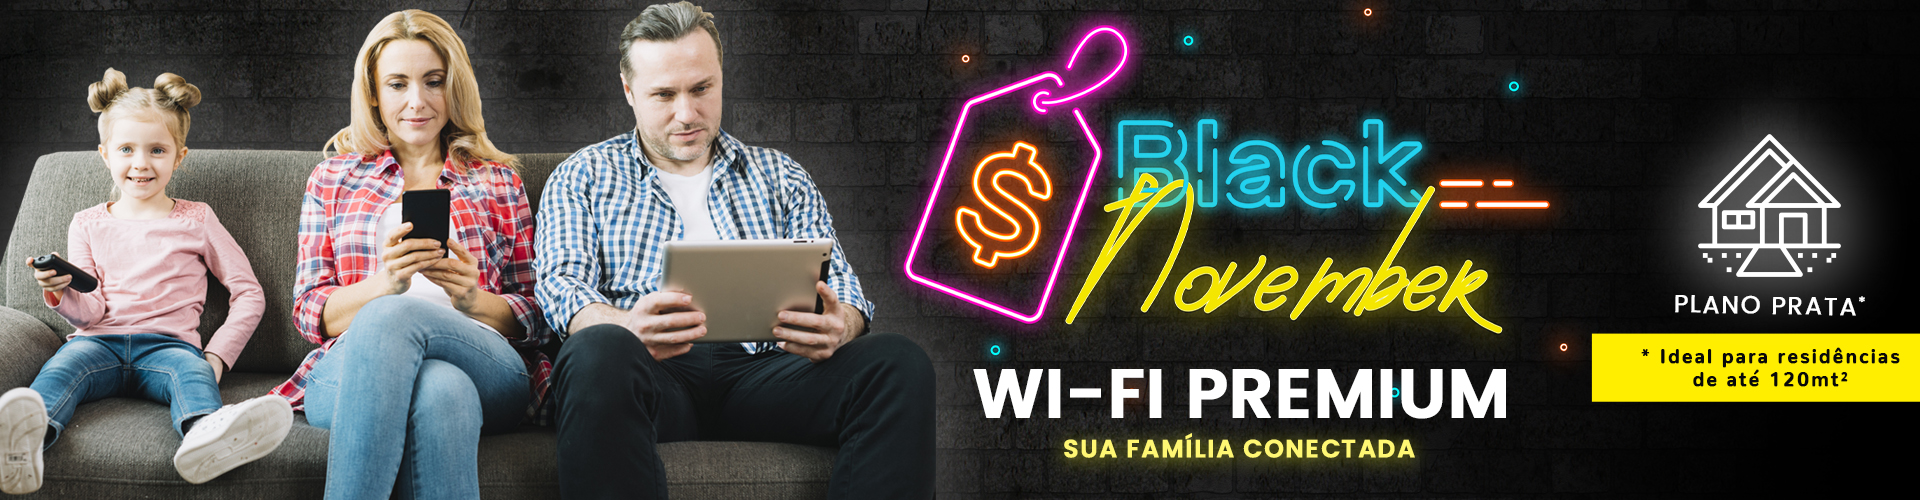 blackfriday_wifi premium_prata